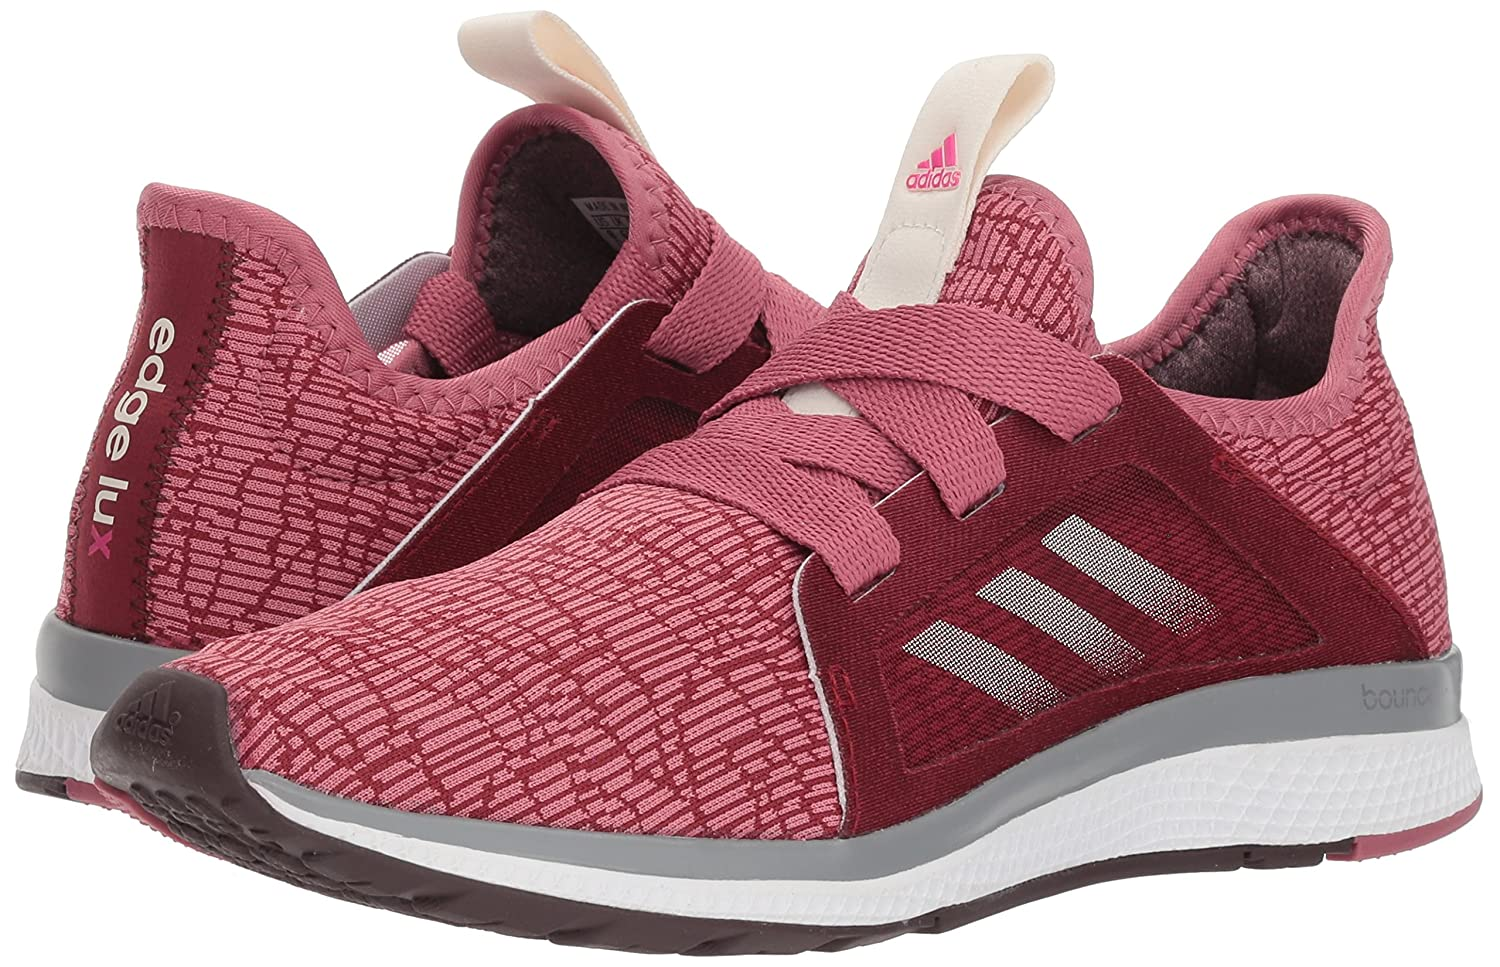 adidas Women's US|Noble Edge Lux Running Shoe B0785FF9Q8 7.5 B(M) US|Noble Women's Maroon/Night Red/Shock Pink b4b43e